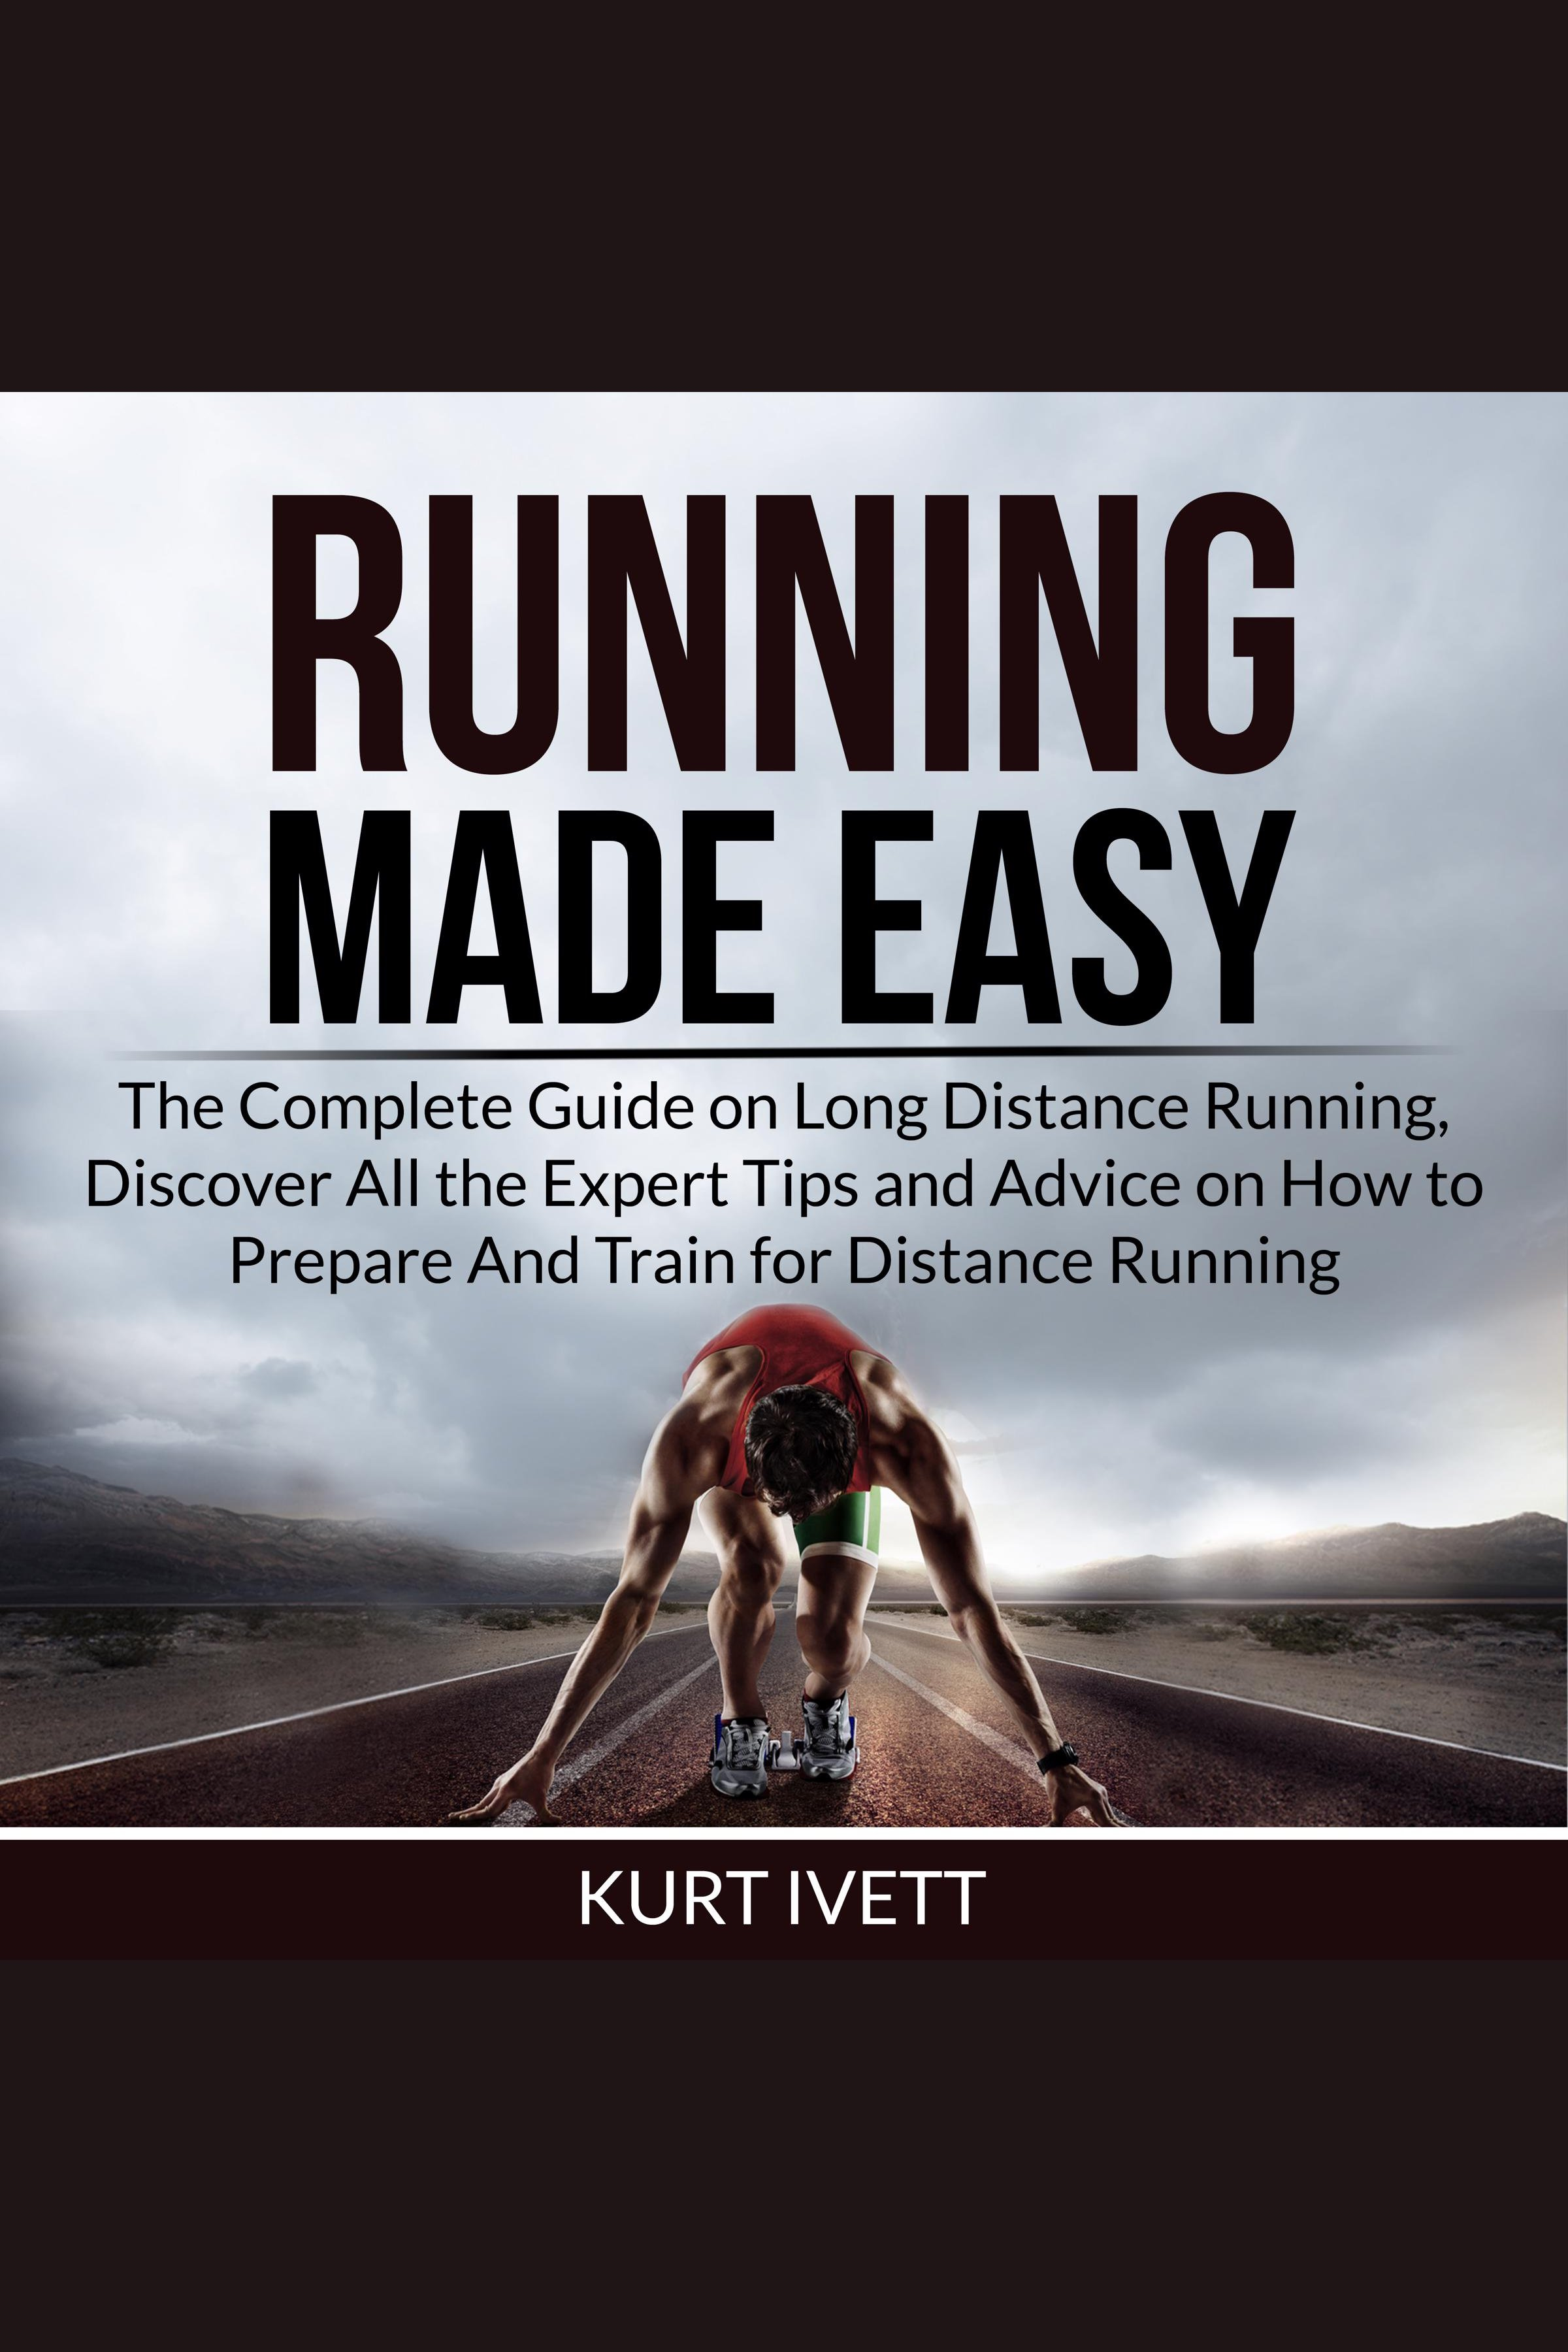 Esta es la portada del audiolibro Running Made Easy: The Complete Guide on Long Distance Running, Discover All the Expert Tips and Advice on How to Prepare And Train for Distance Running